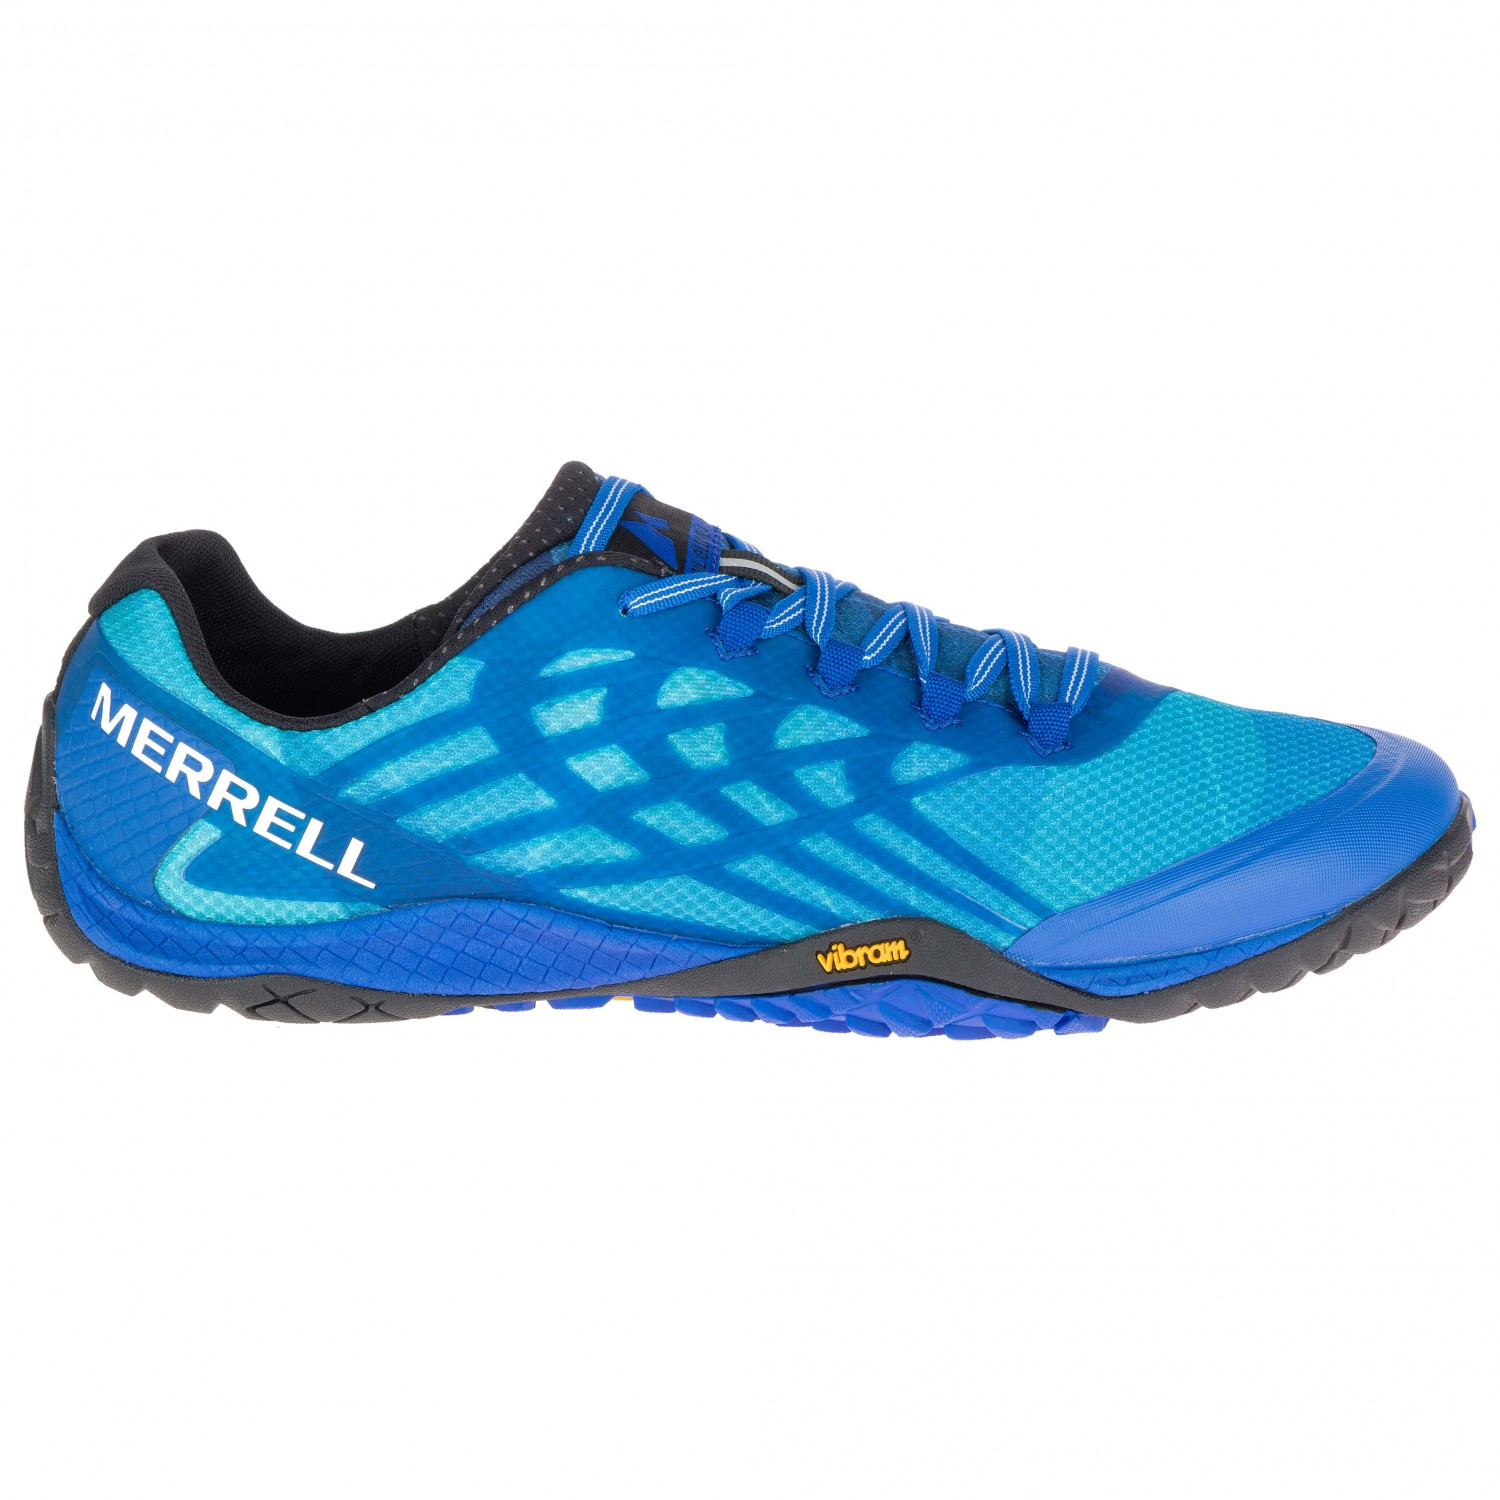 Merrell Trail Running Shoes Uk